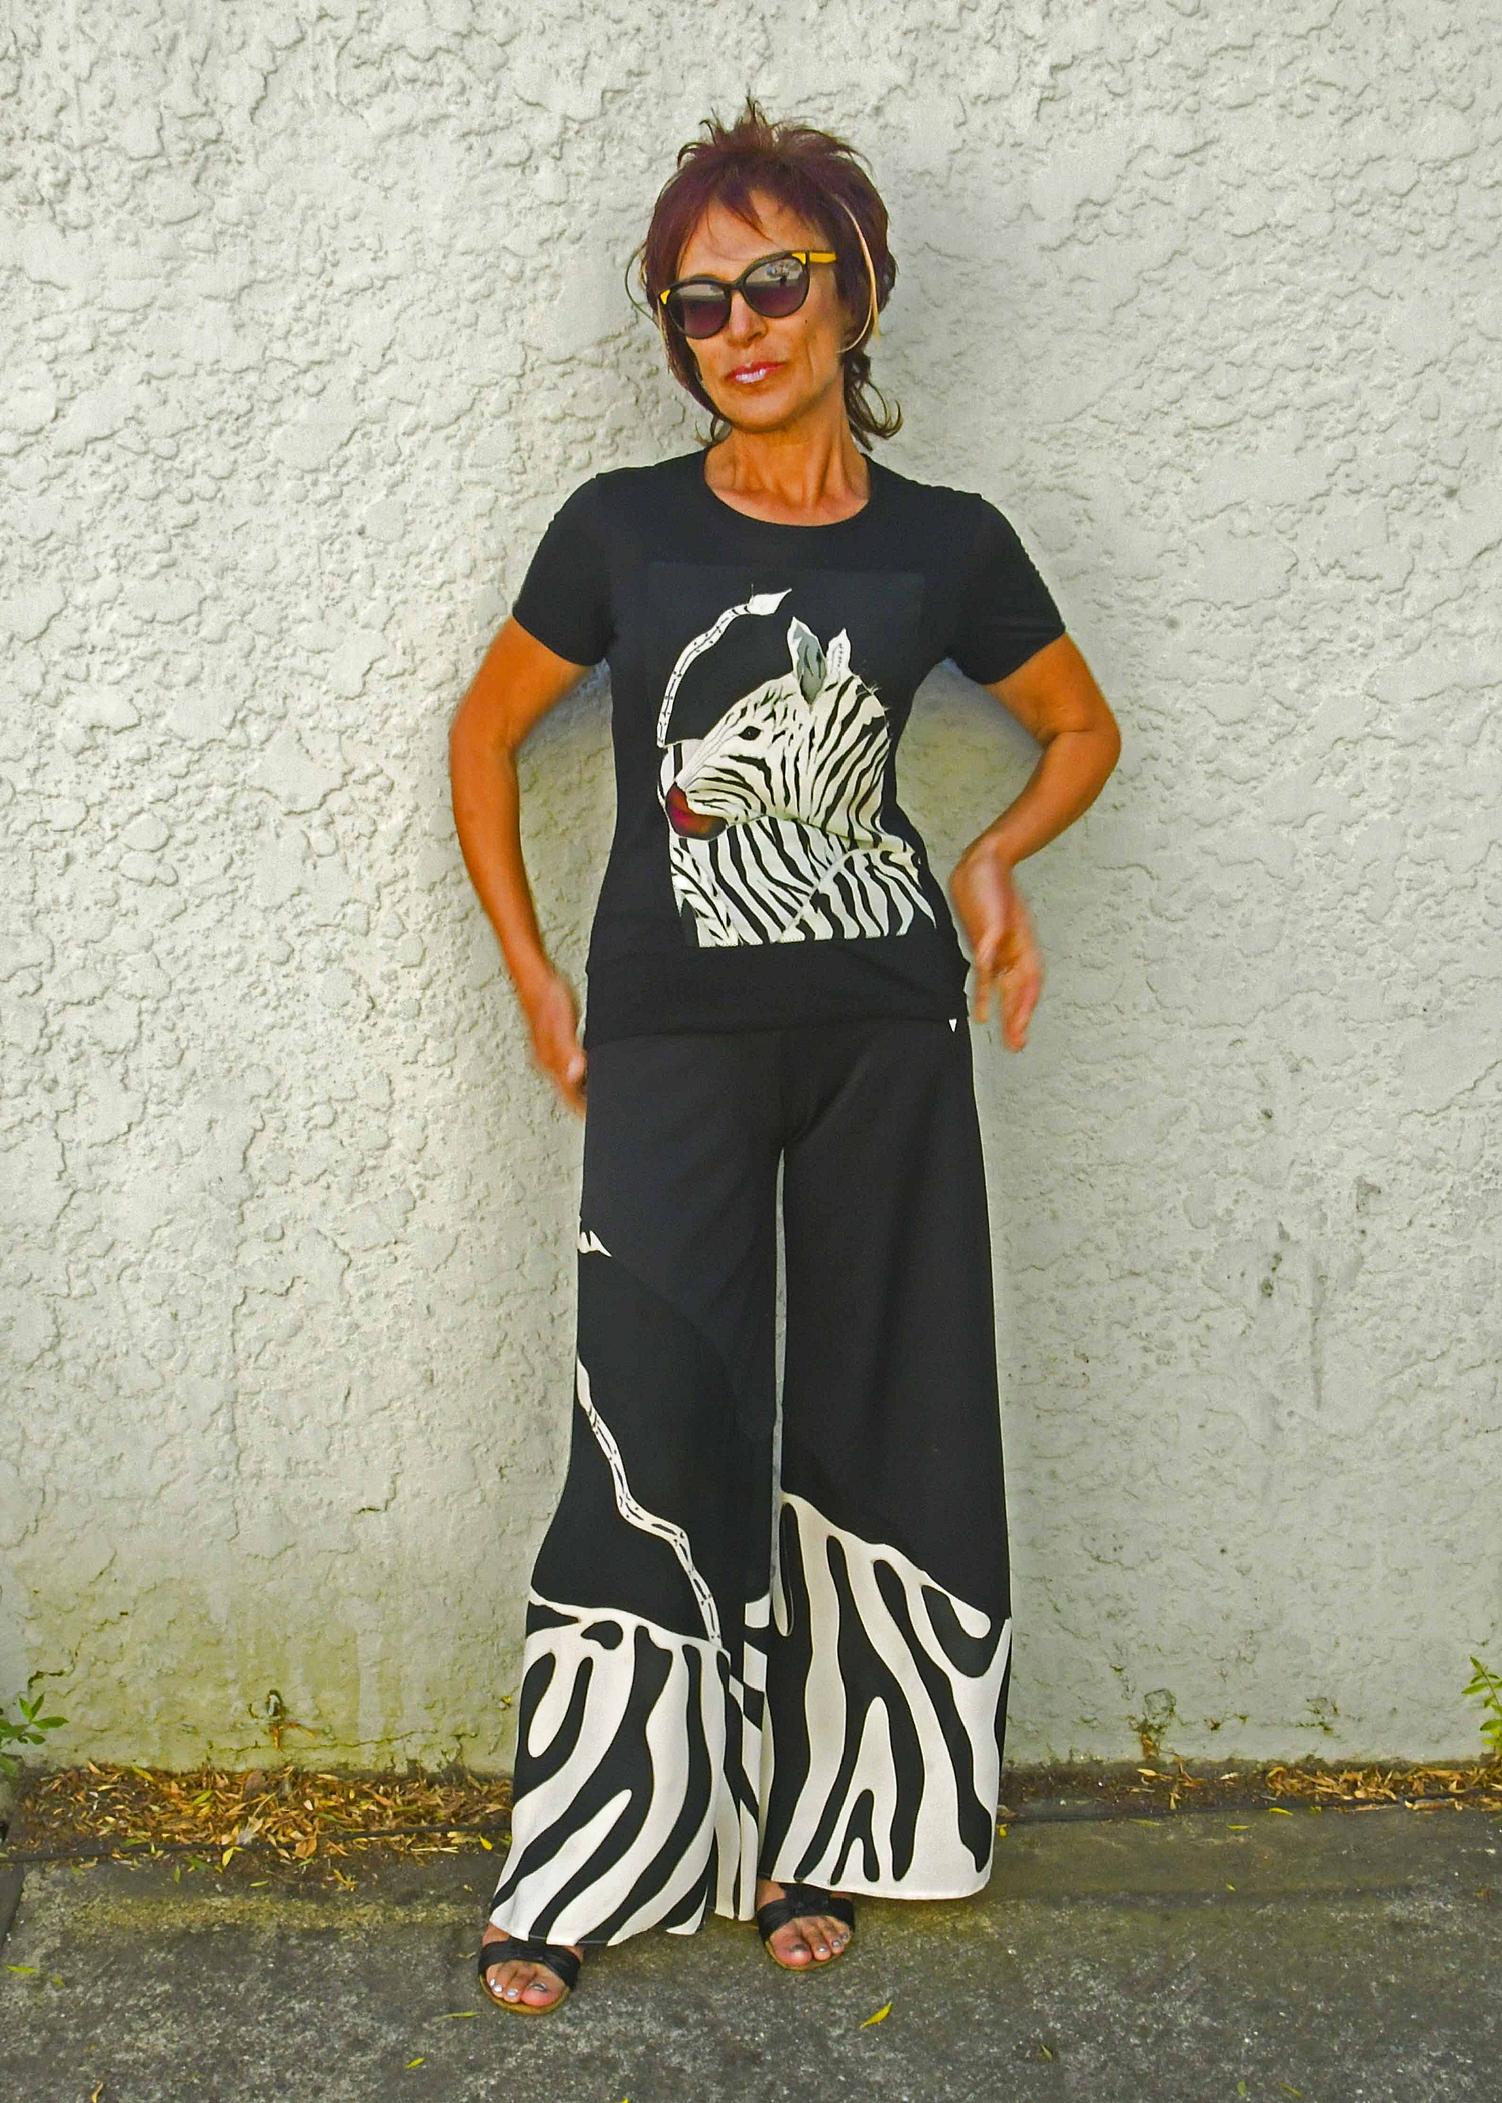 Zebra T-shirt and pants